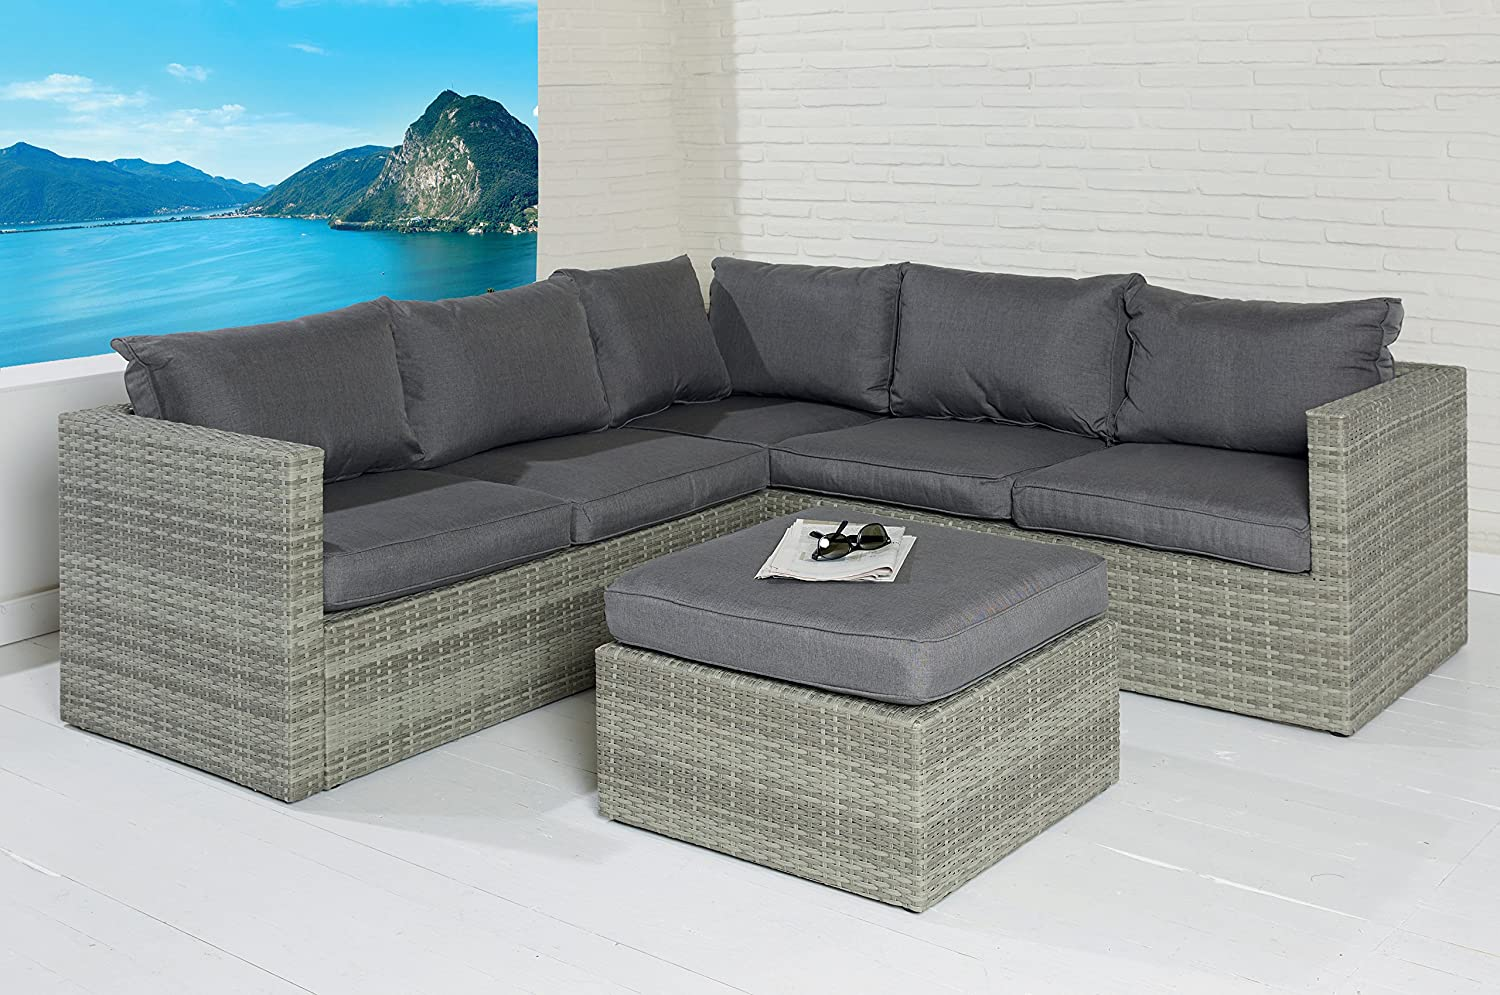 poly rattan sitzgruppe sofa lounge set grau gartenm bel. Black Bedroom Furniture Sets. Home Design Ideas